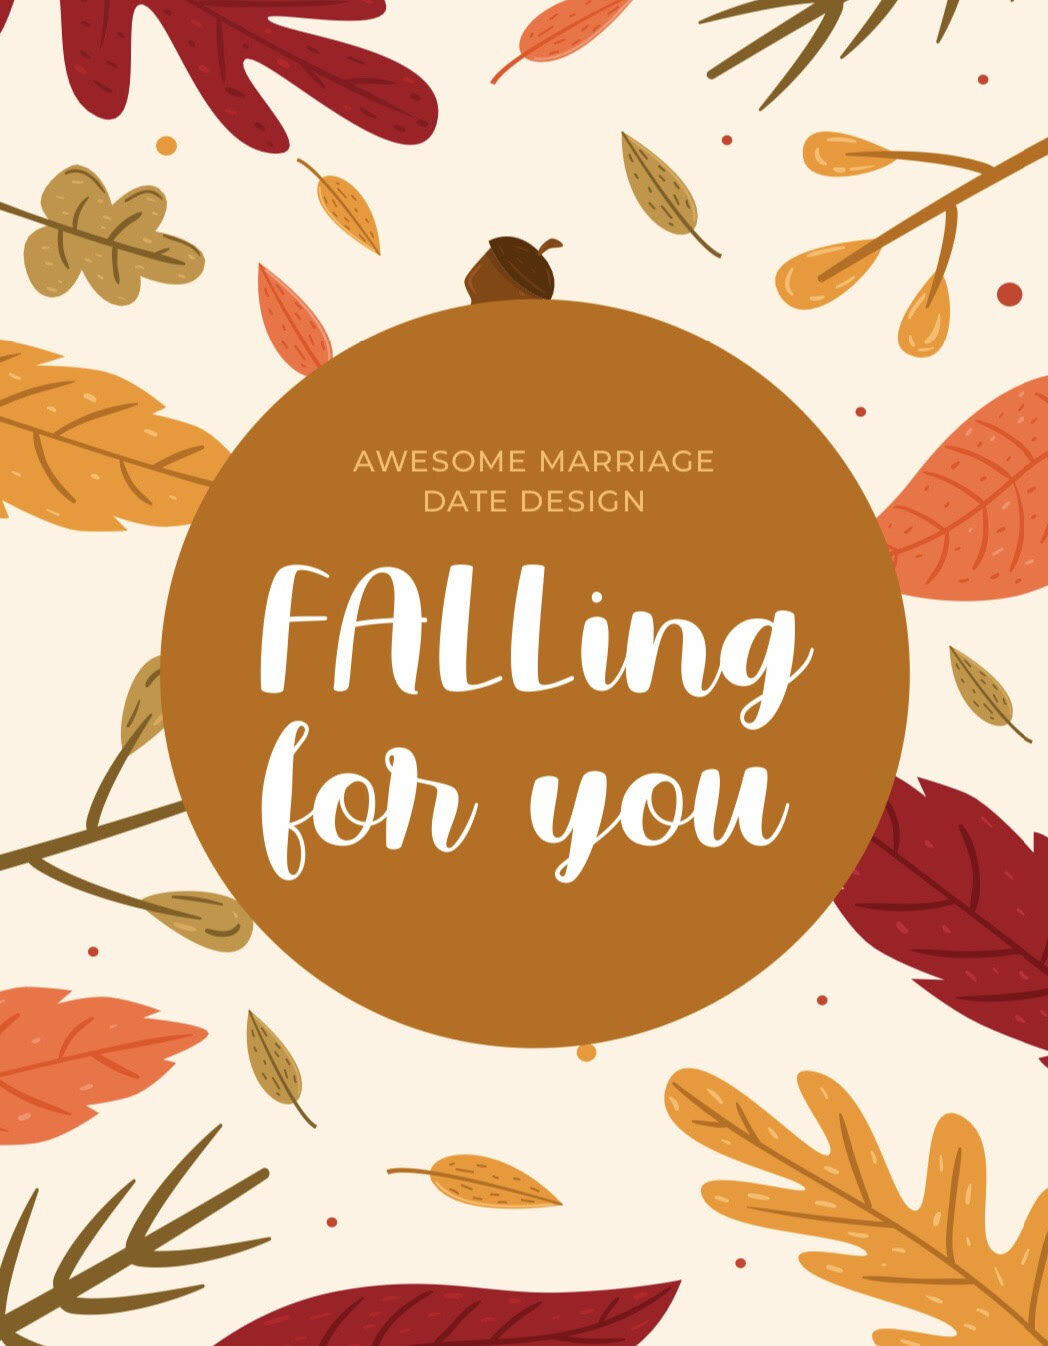 Falling For You Image (Front Page).jpg